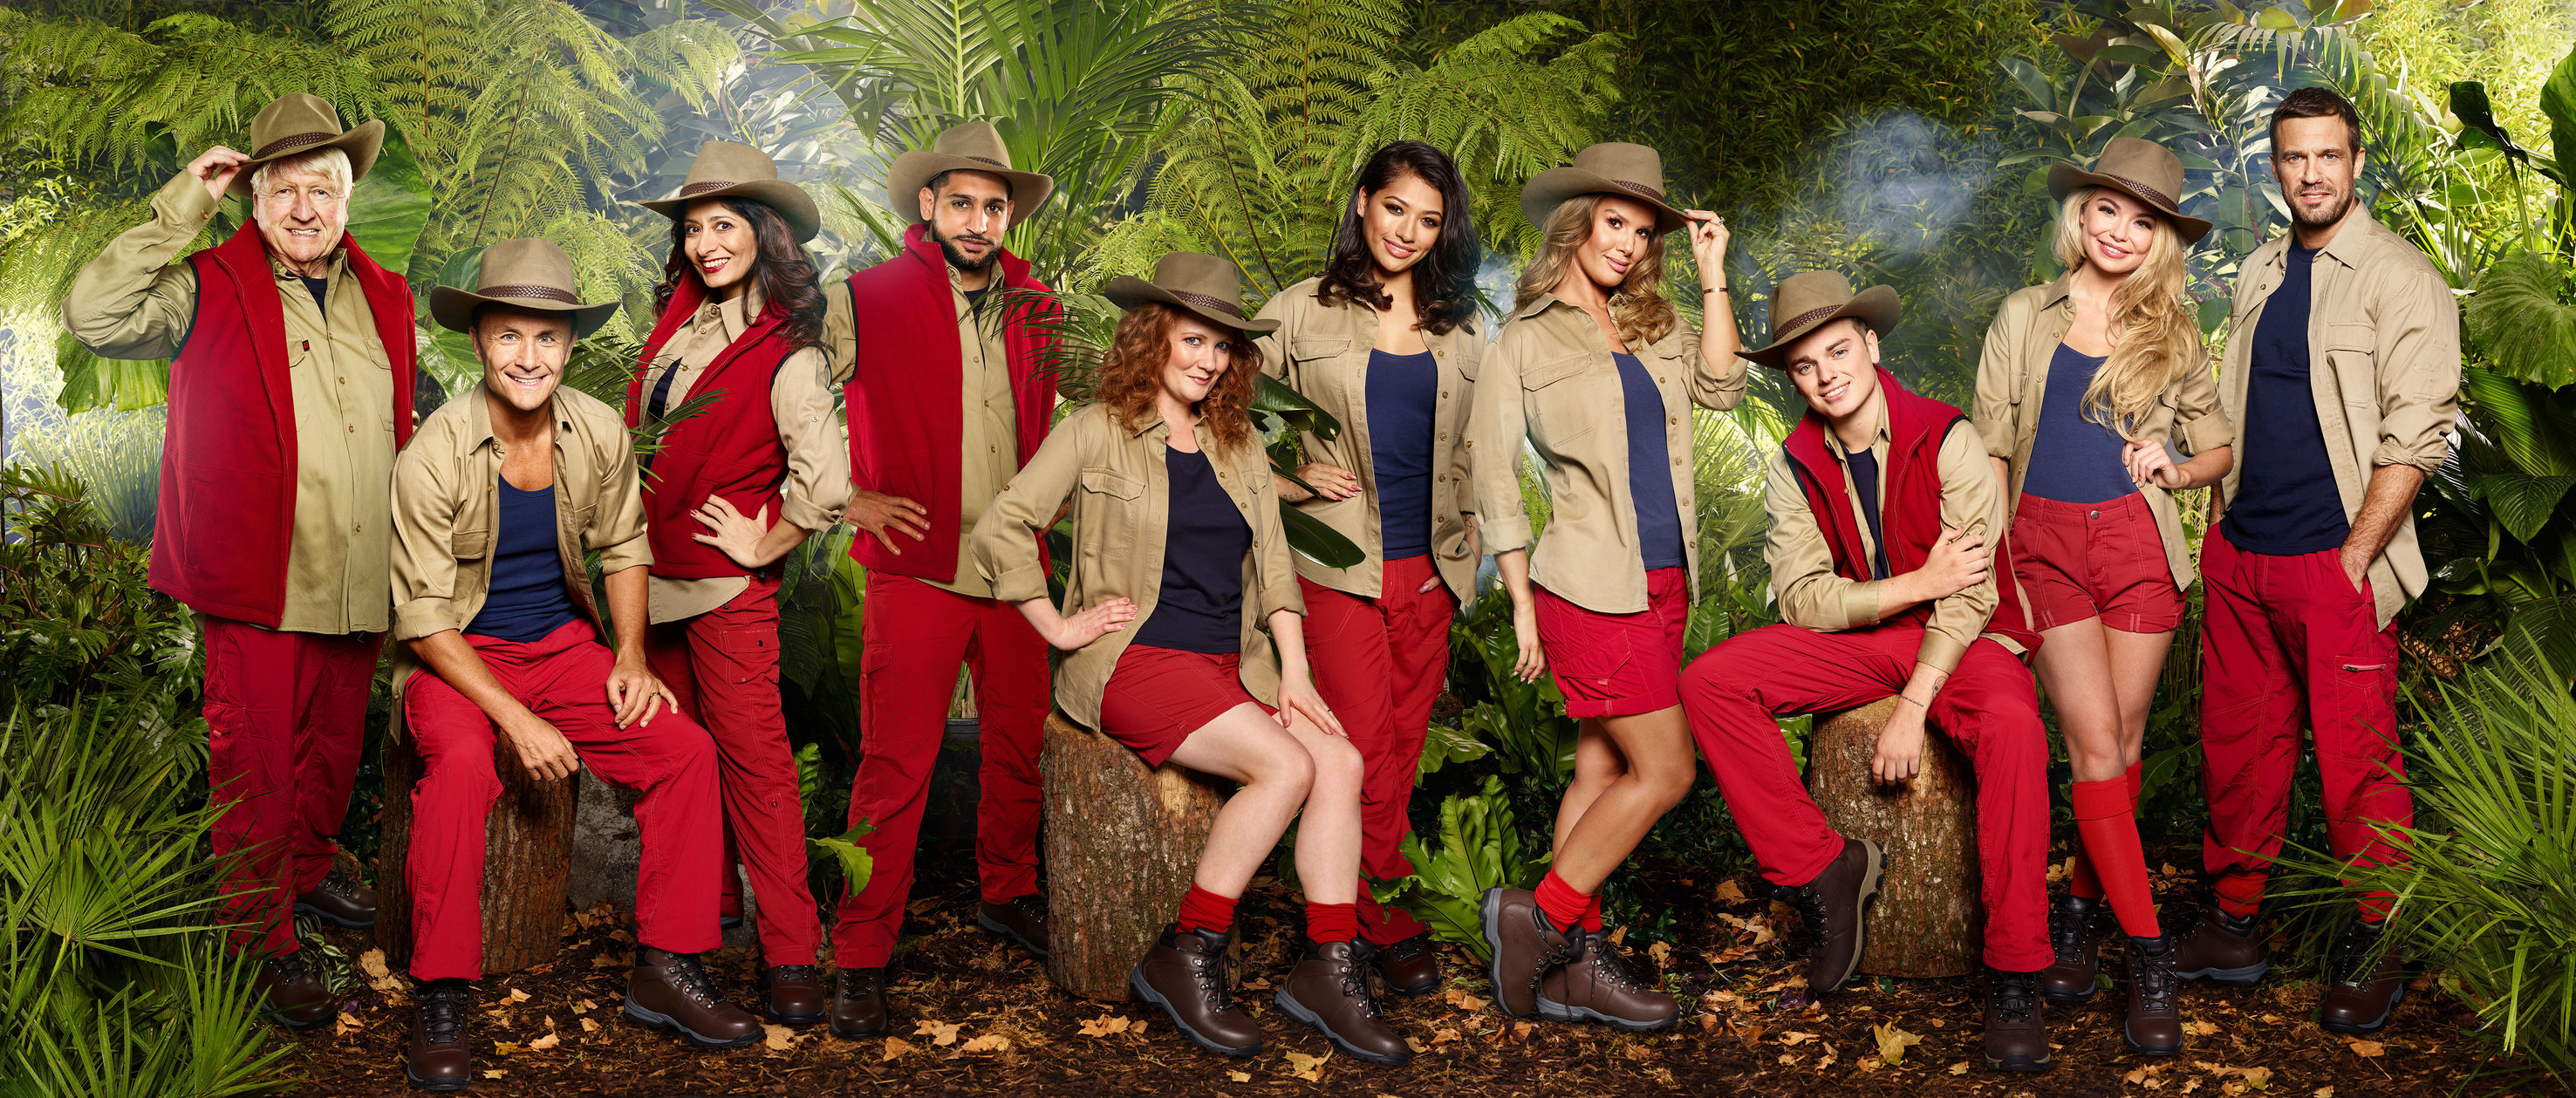 Im A Celeb Stars Tears Over Being Branded Bully Revealed In Tonights Coming Out Show Not So Happy Campers